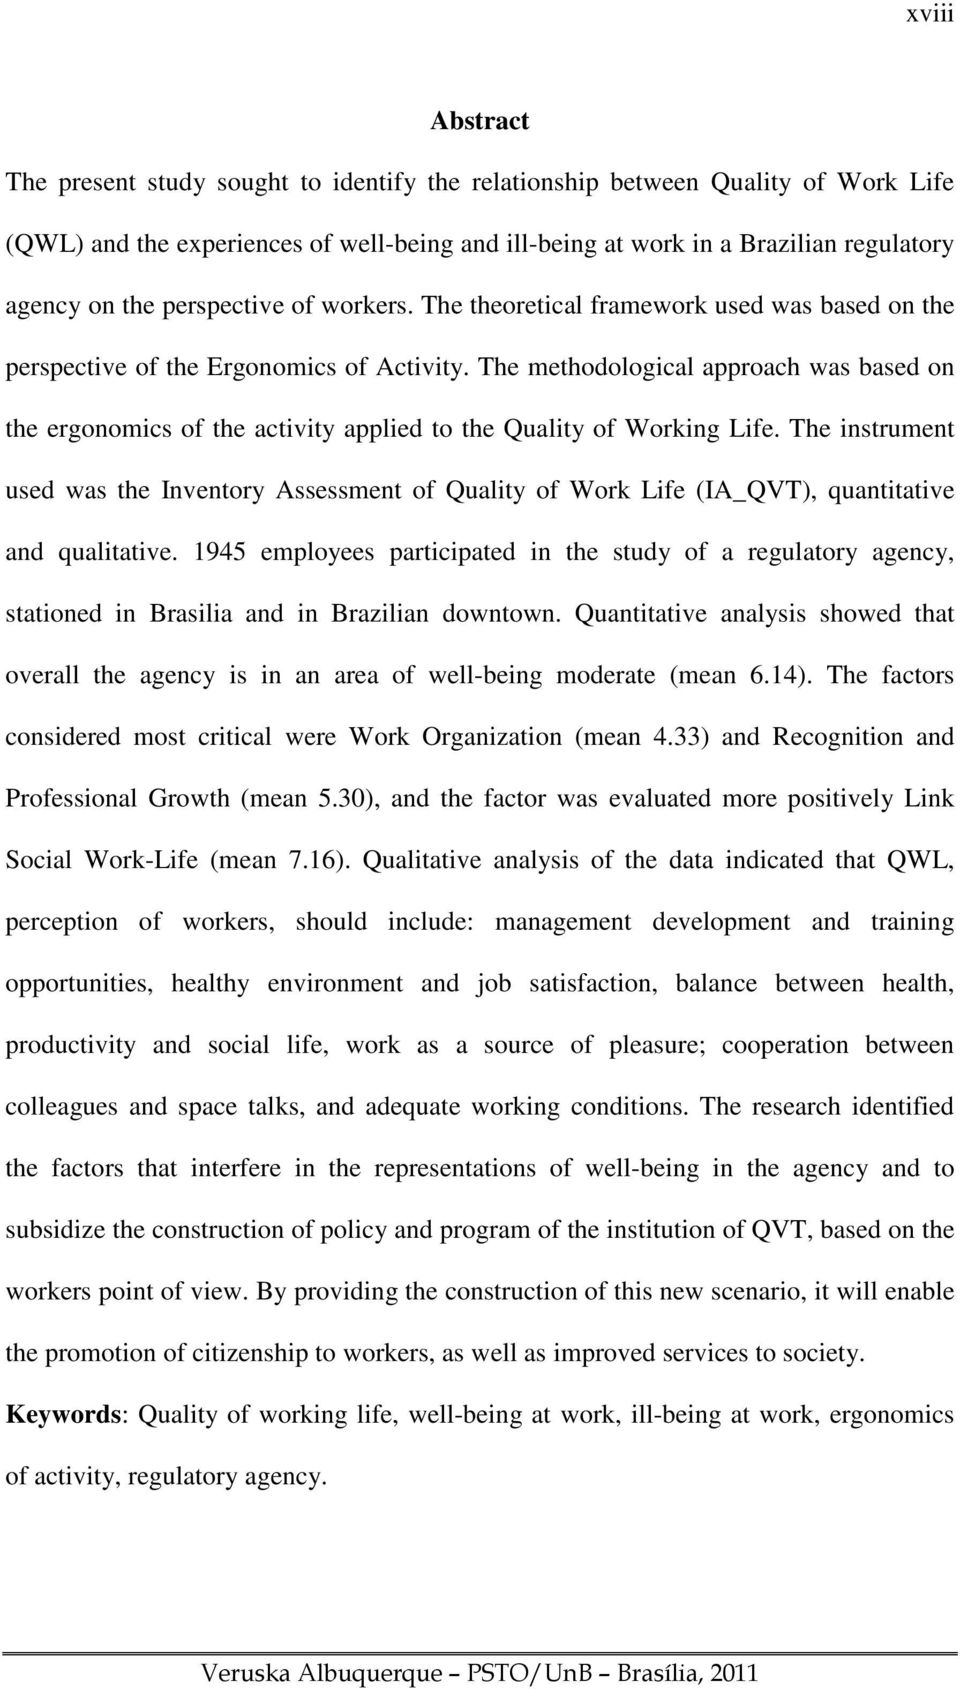 The methodological approach was based on the ergonomics of the activity applied to the Quality of Working Life.